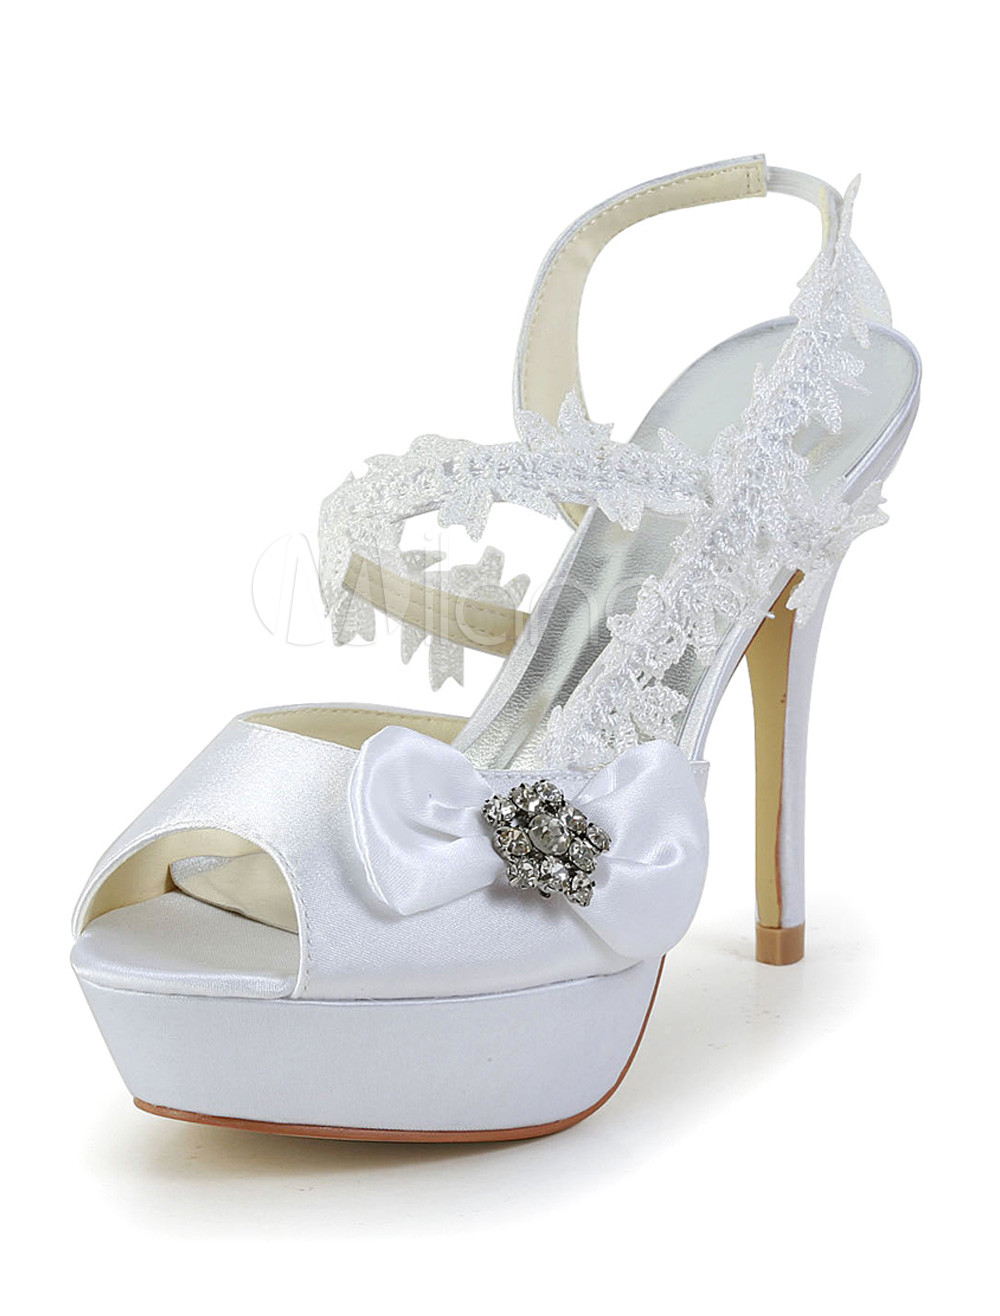 Buy Beautiful White Silk And Satin Peep Toe Bow Rhinestone Evening and Bridal Platforms for $59.84 in Milanoo store